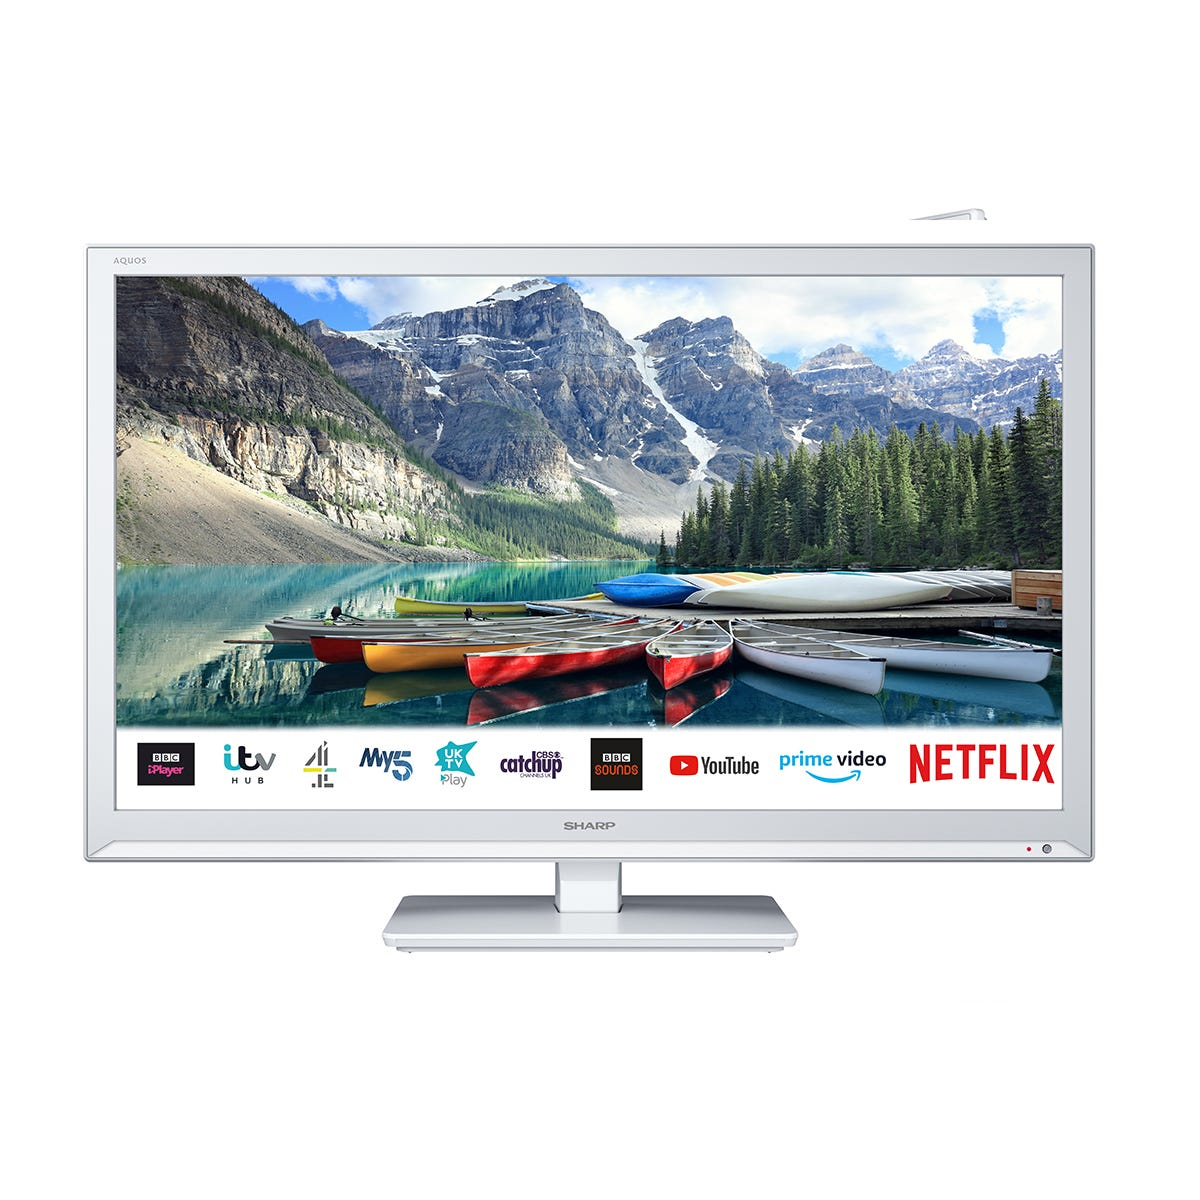 Sharp 11T-C24BE0KR1FW 24 Inch HD Ready LED Smart Freeview Play TV with DVD - White